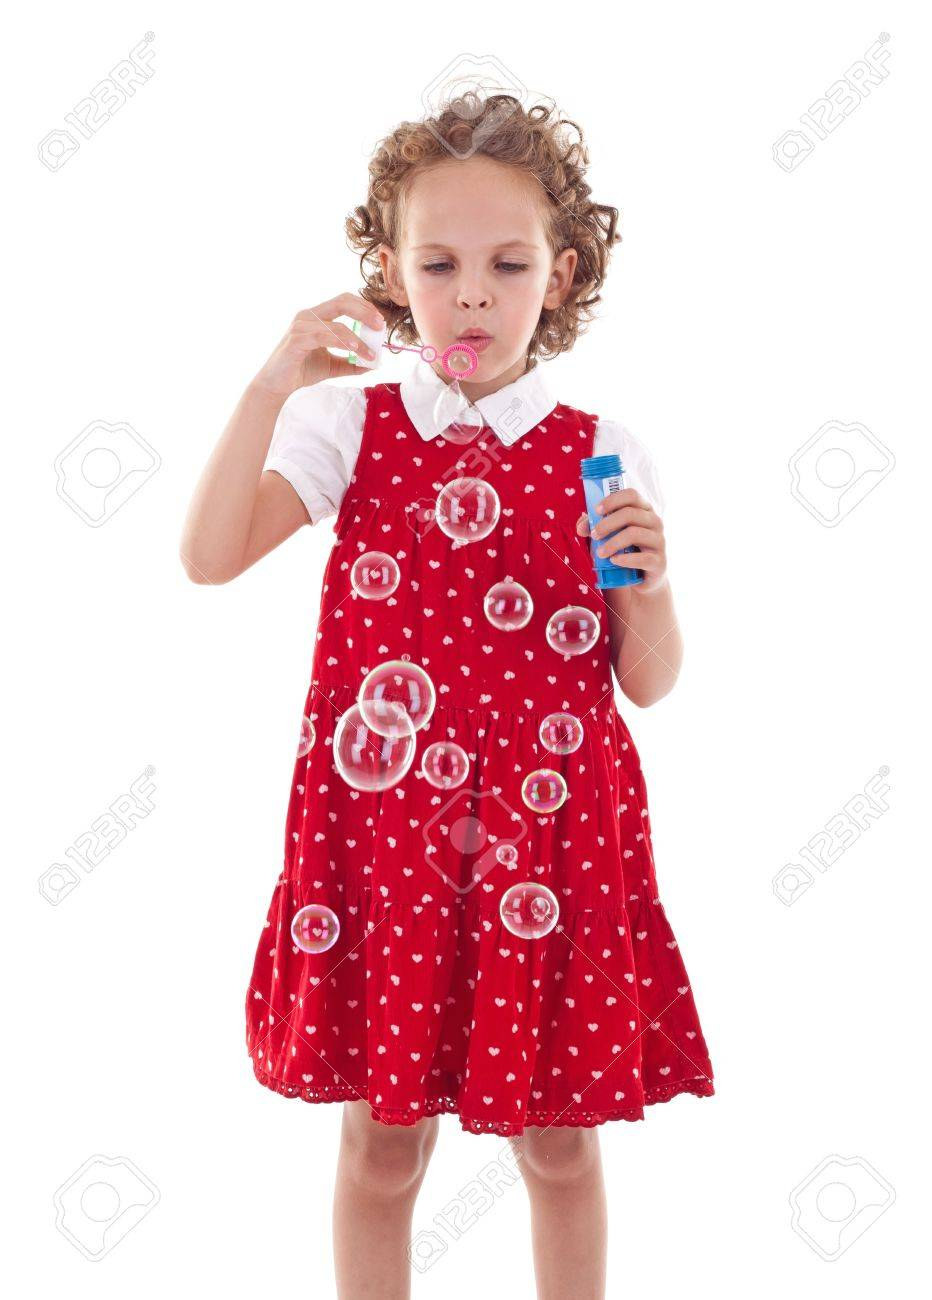 Red Dress Making Water